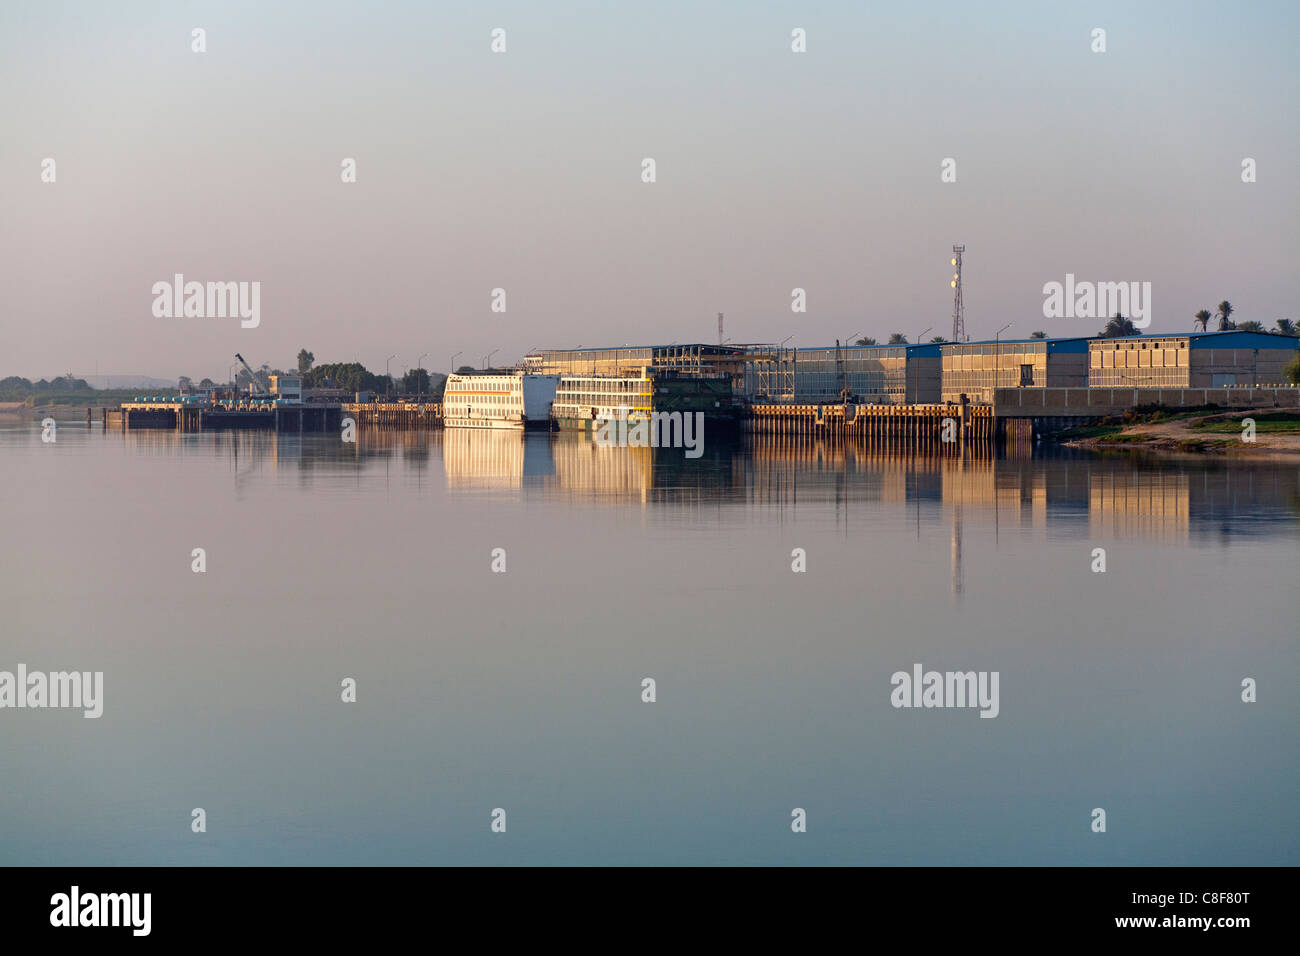 Redundant cruise ships moored near industrial buildings on the Nile reflecting in the golden water in early morning - Stock Image